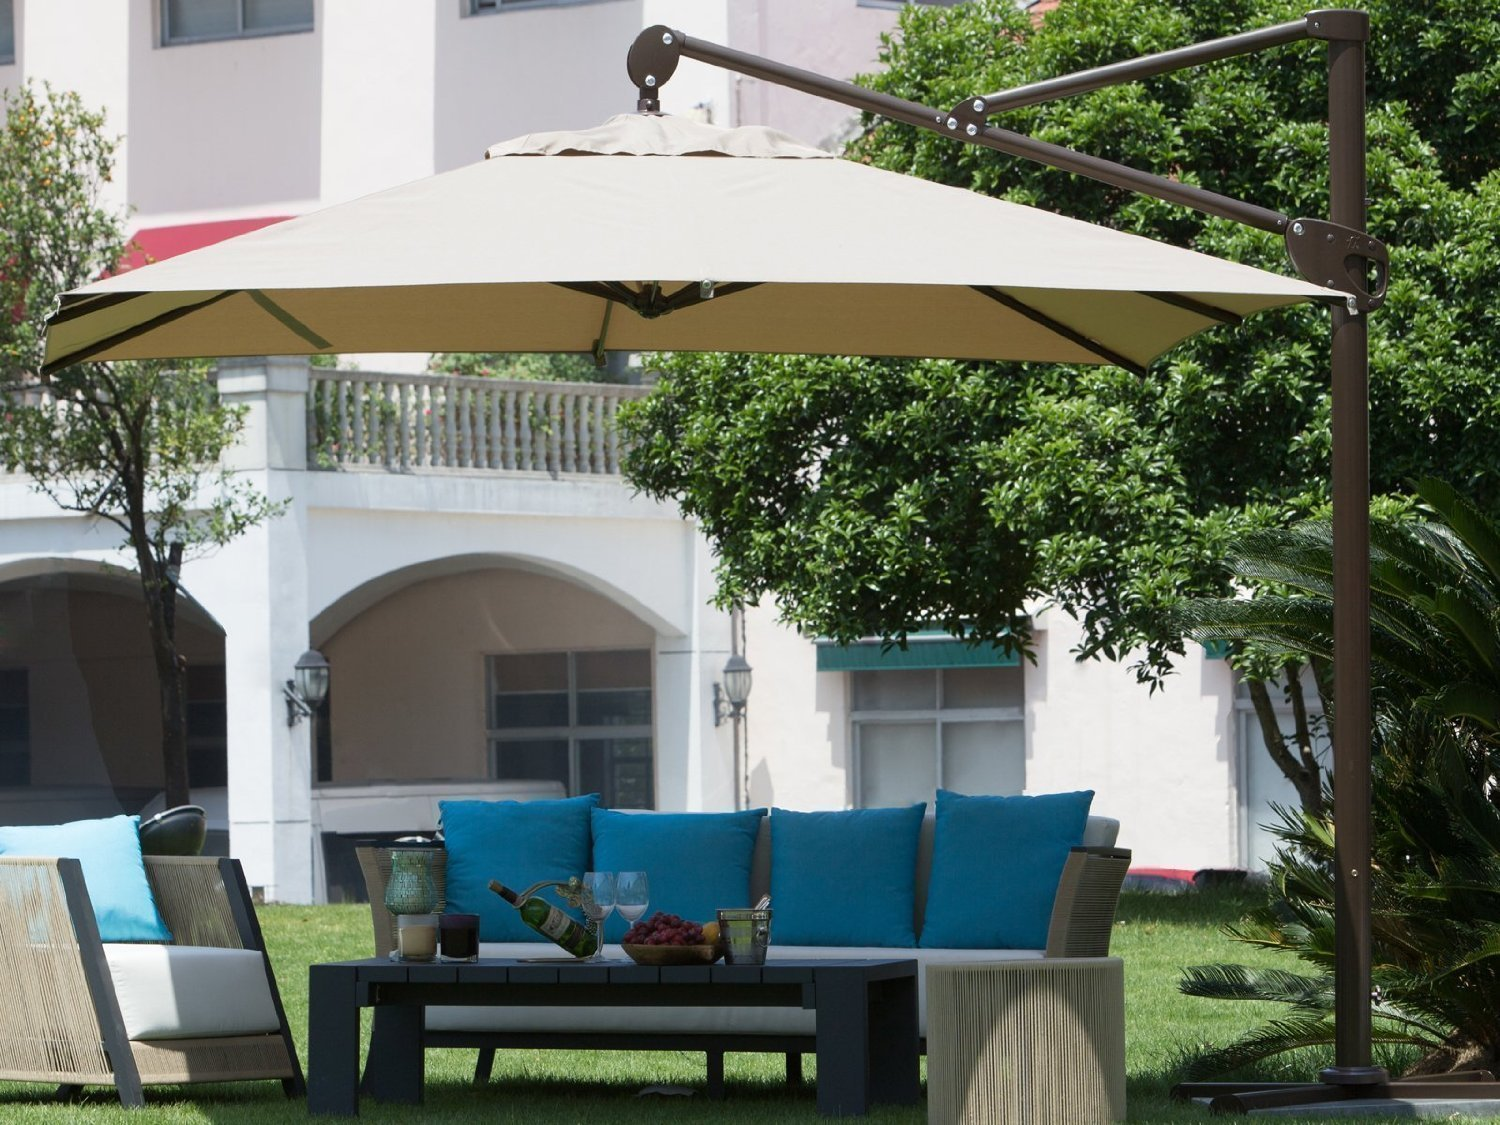 Rectangular Cantilever Umbrella Reviews Outsidemodern